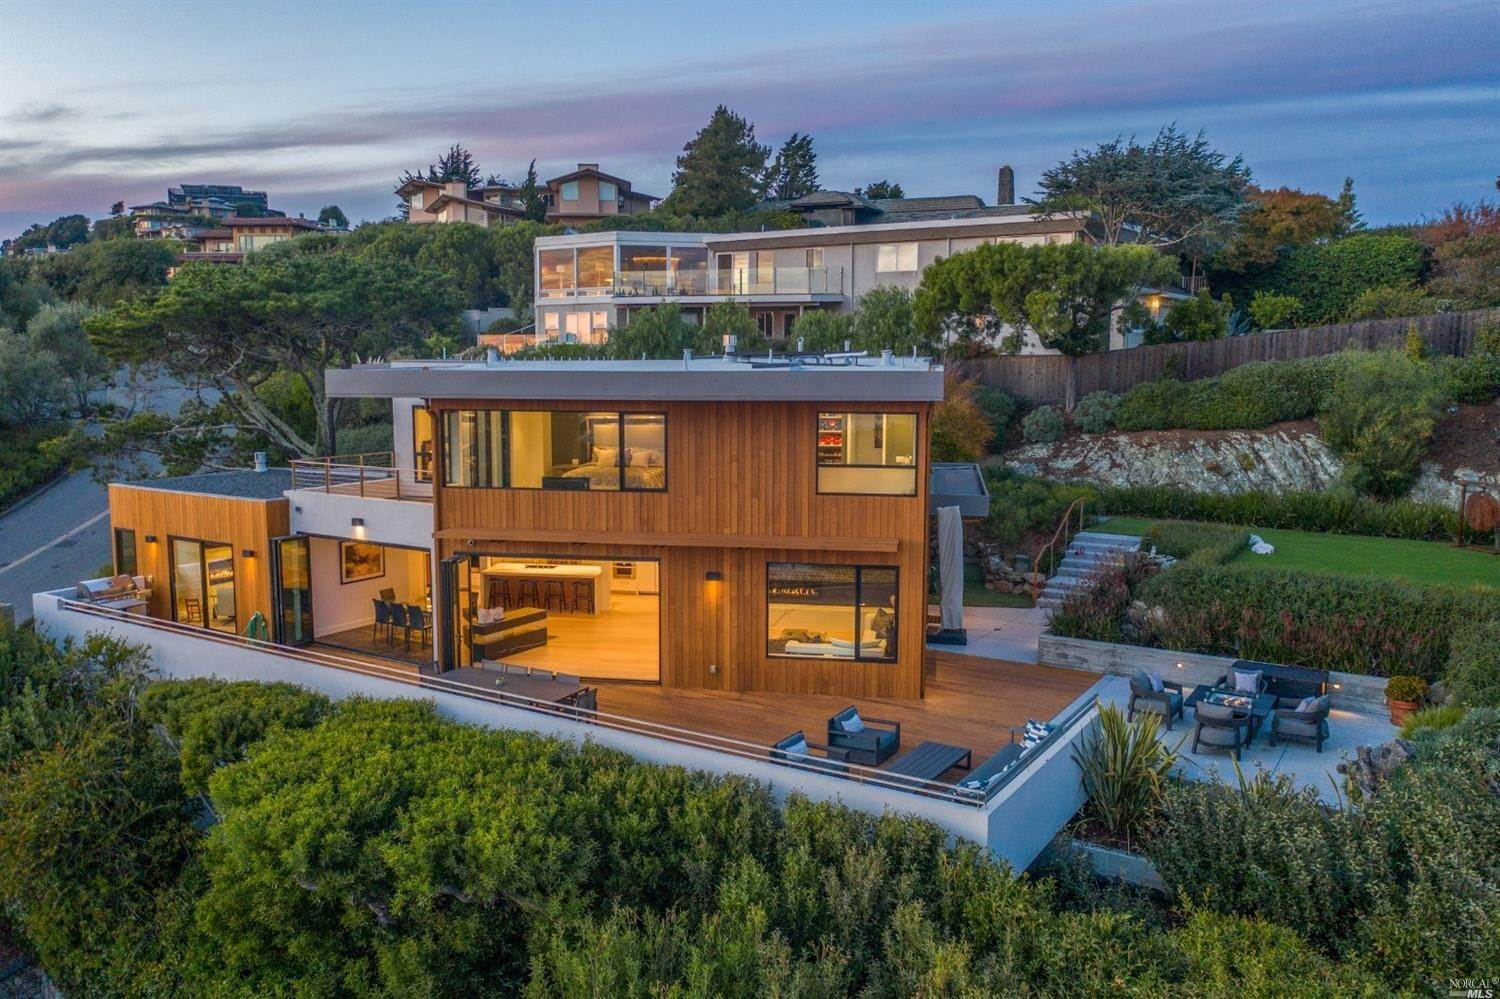 Single Family Homes for Sale at 86 Sugarloaf Drive, Tiburon Tiburon, California 94920 United States